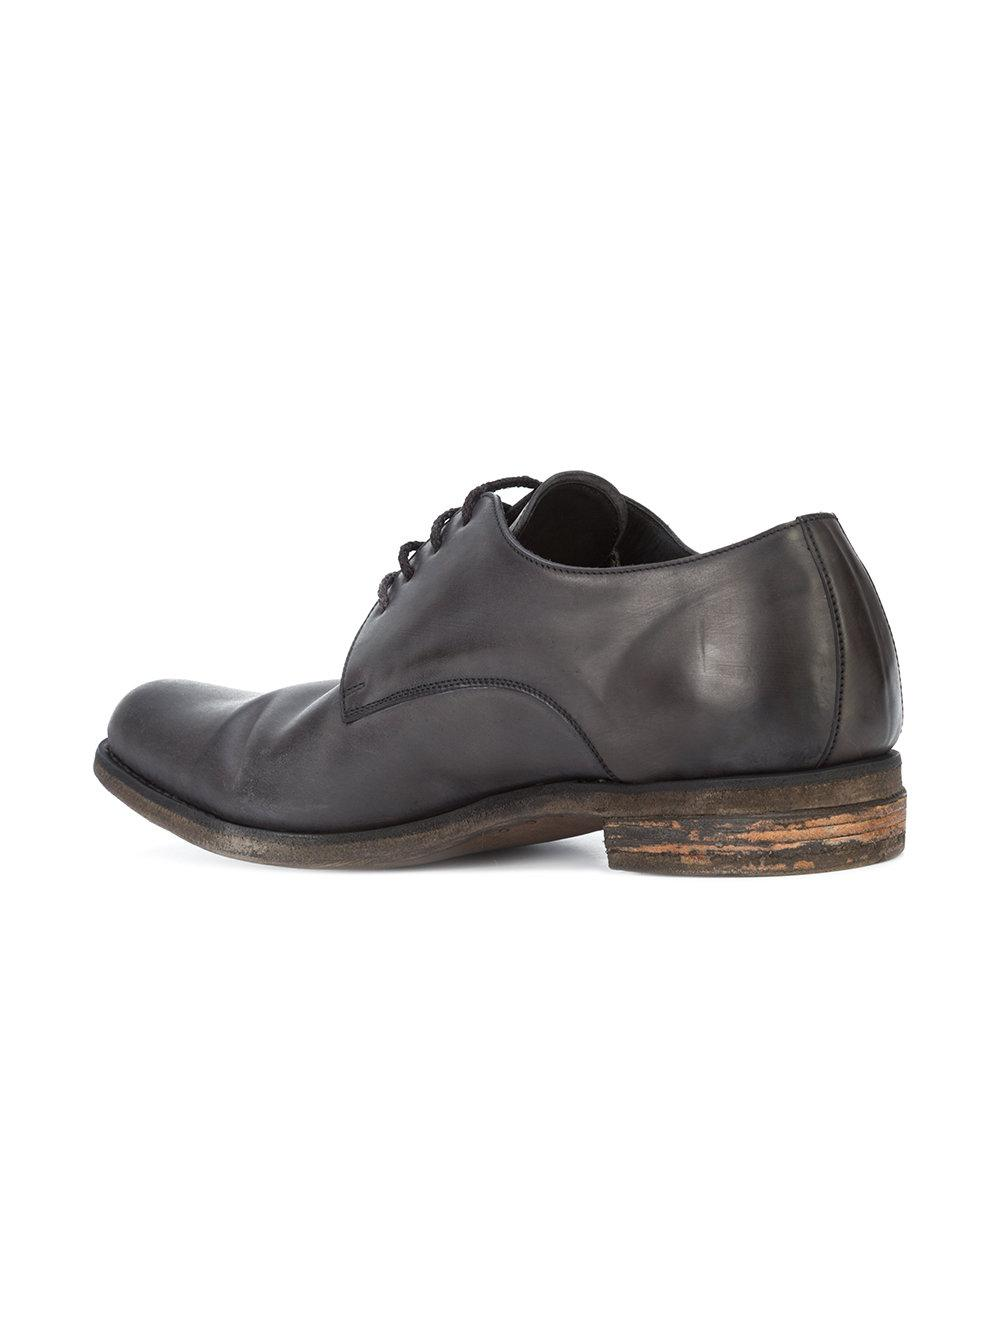 A Diciannoveventitre Leather Distressed Derby Shoes in Black for Men